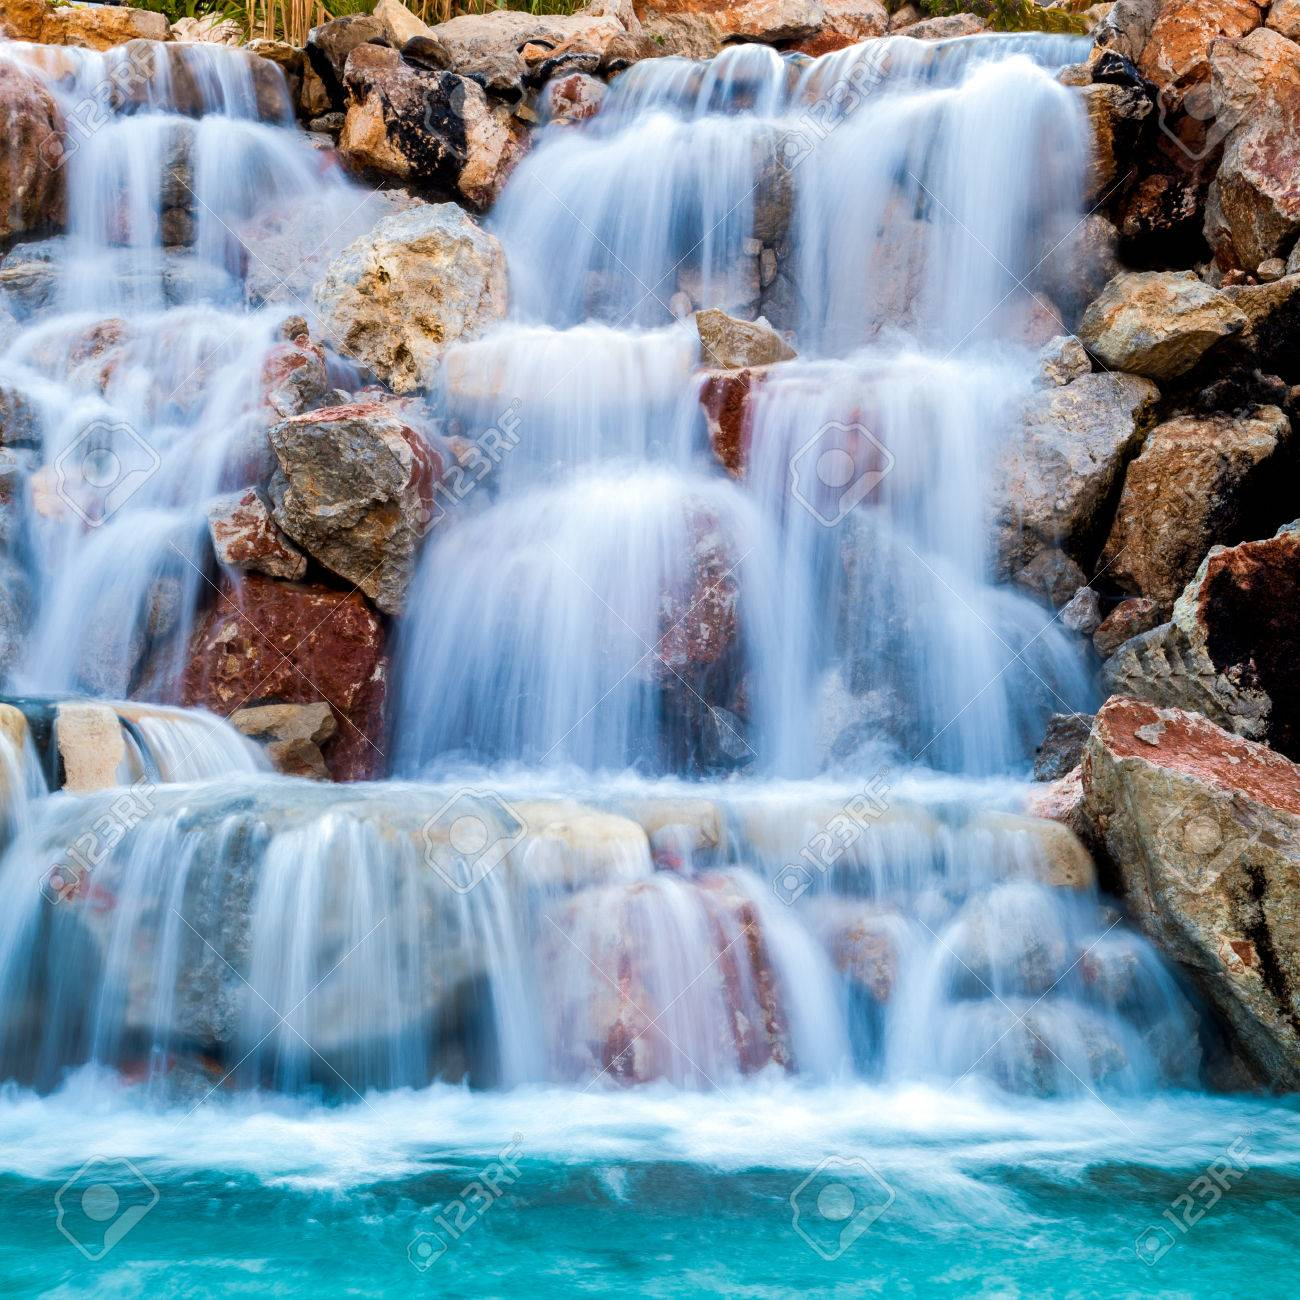 Waterfall Beautiful Background Of Stone Water Moss Stock Photo Picture And Royalty Free Image Image 36064006